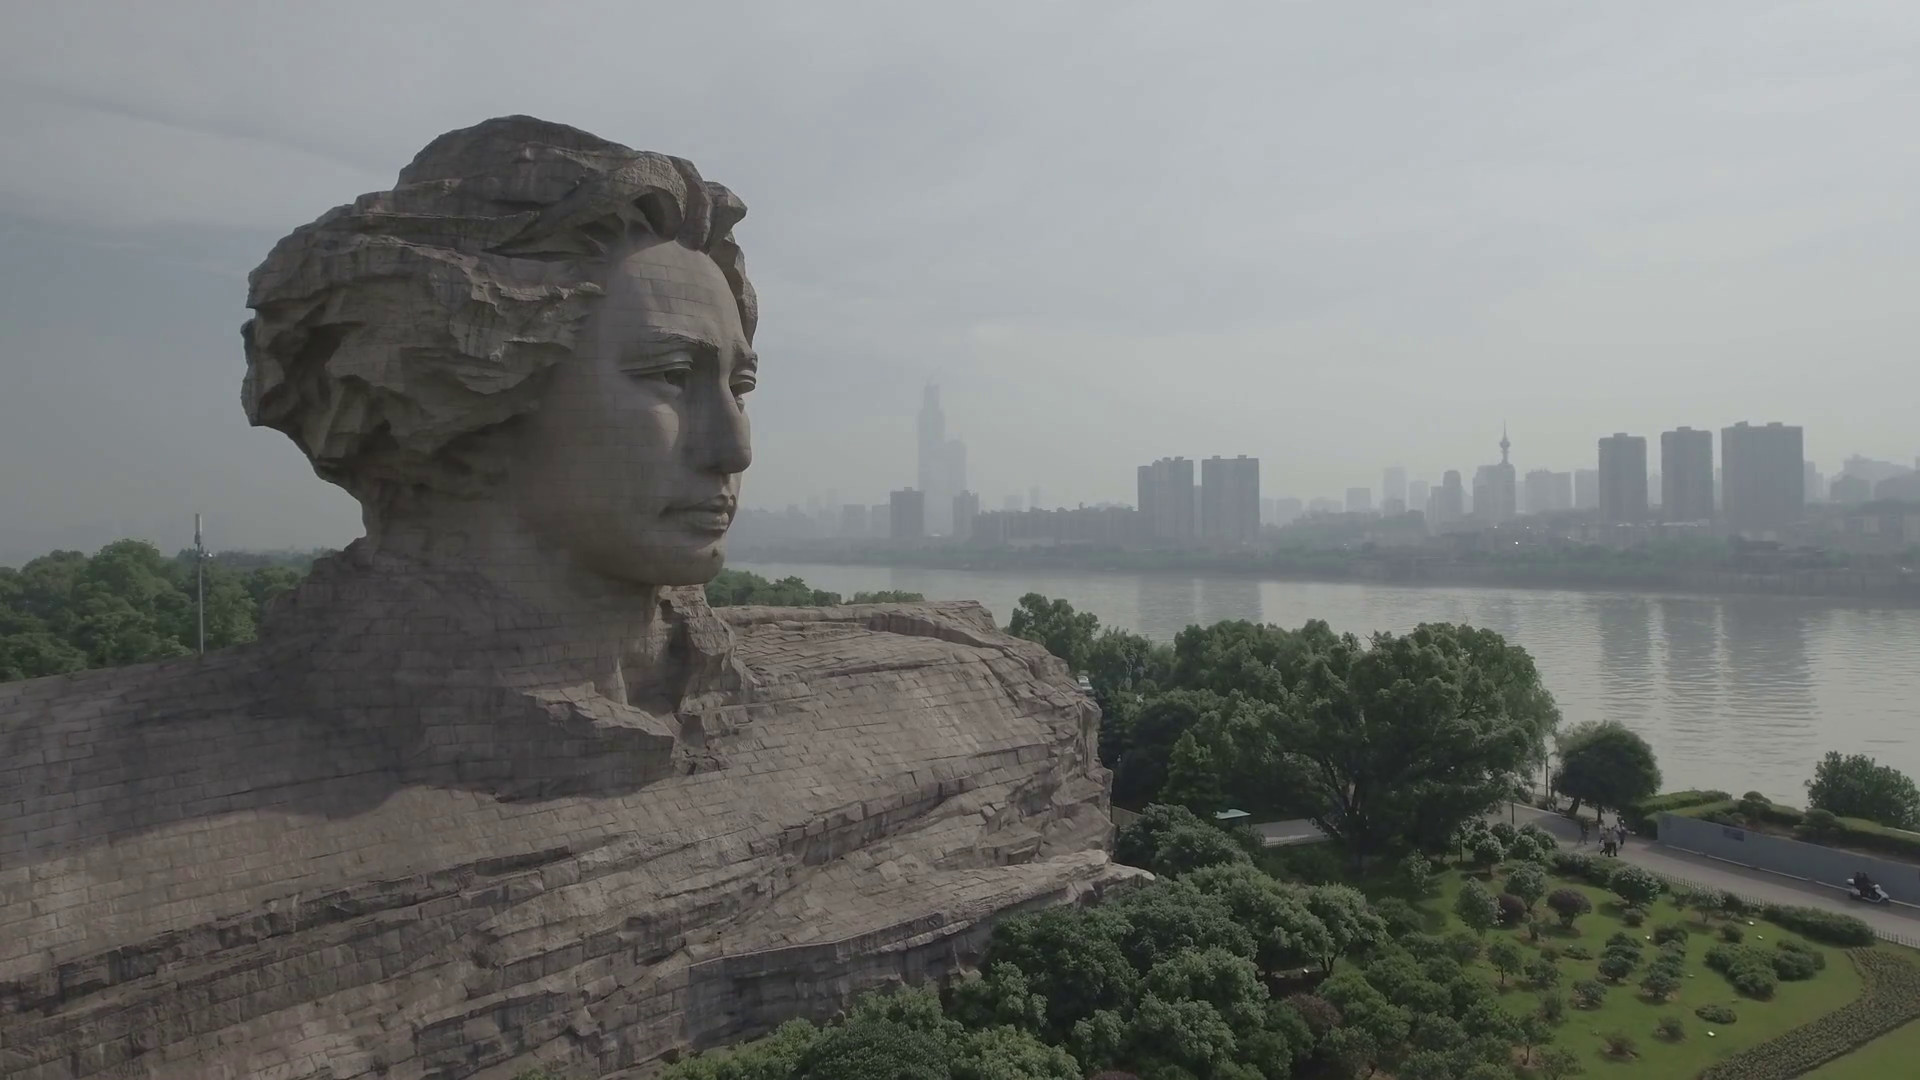 Res: 1920x1080, Aerial drone view of a massive statue of the head of Mao Zedong, founder of  the People's Republic of China, in Changsha Stock Video Footage -  Videoblocks